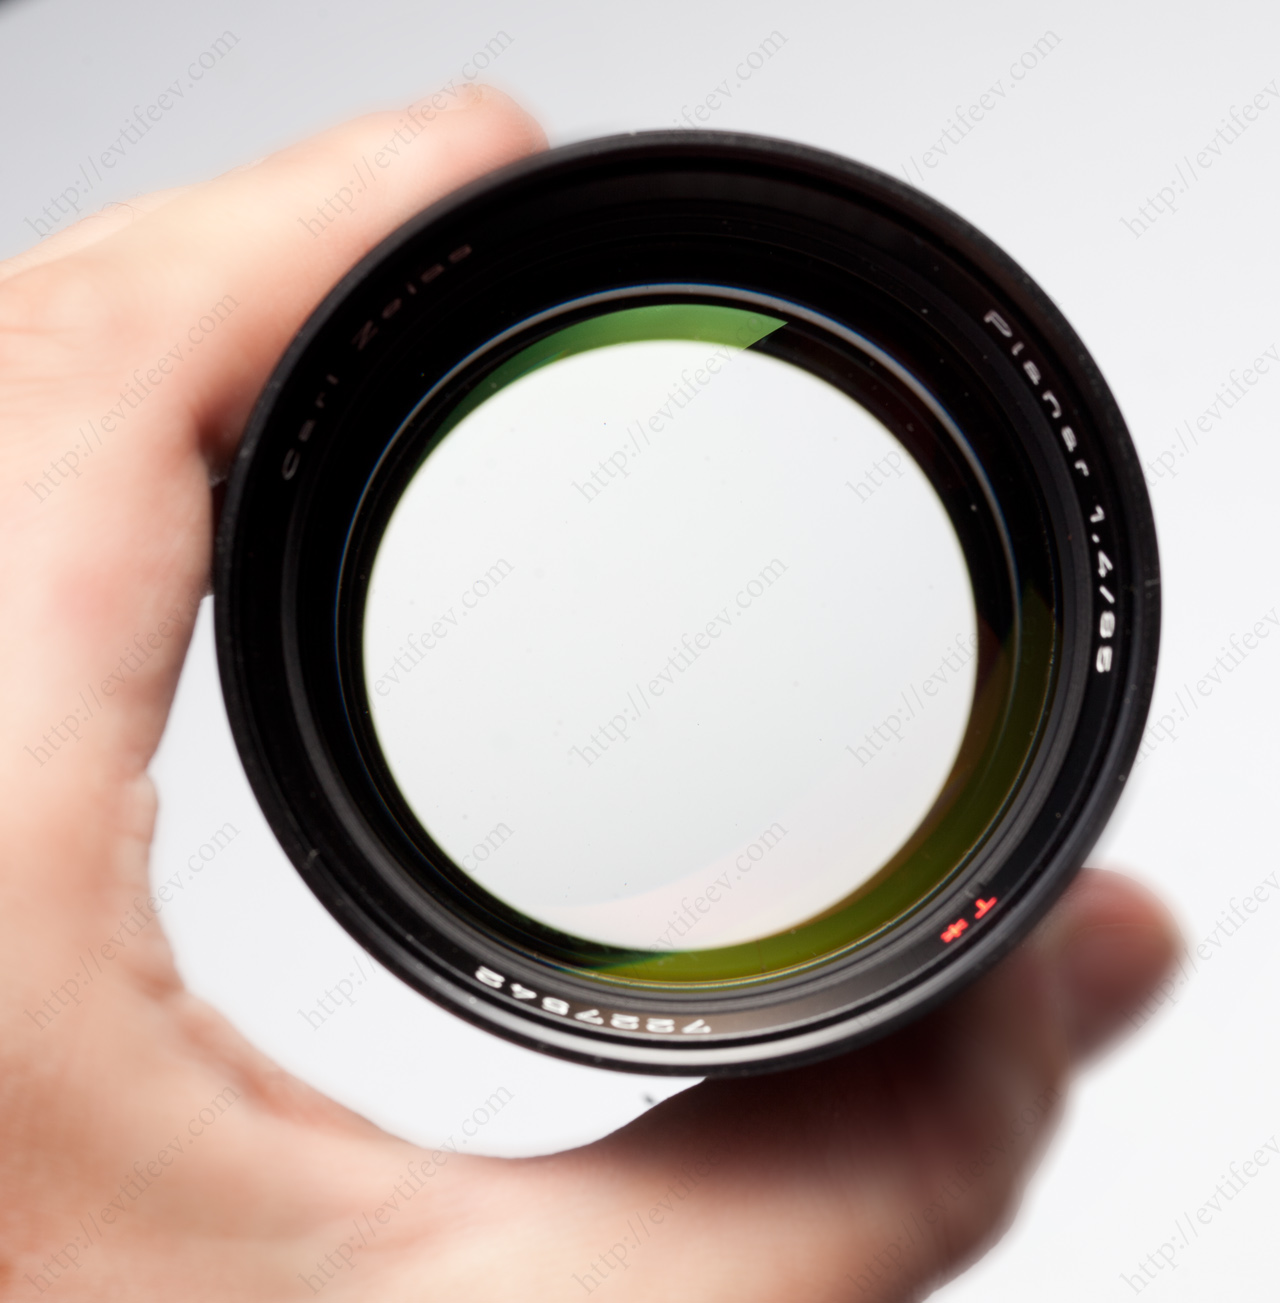 Japanese Carl Zeiss Planar 85/1.4 with aperture wide-open (F1.4)